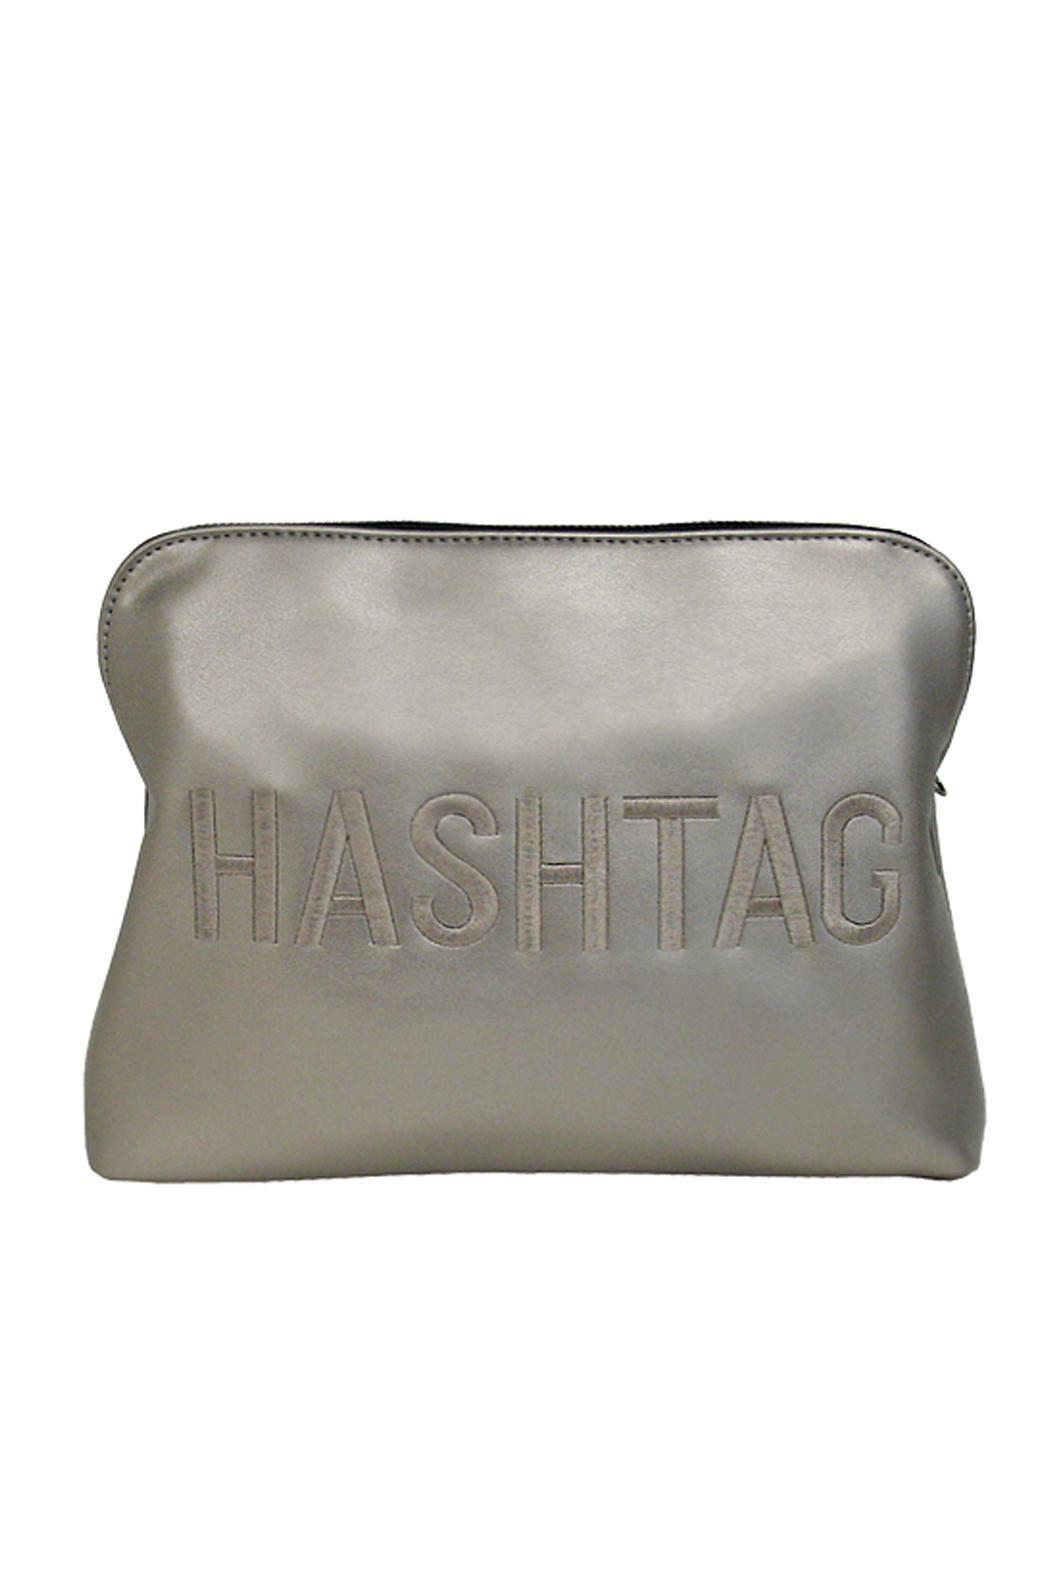 Wild Lilies Jewelry  Hashtag Faux Leather Bag - Main Image